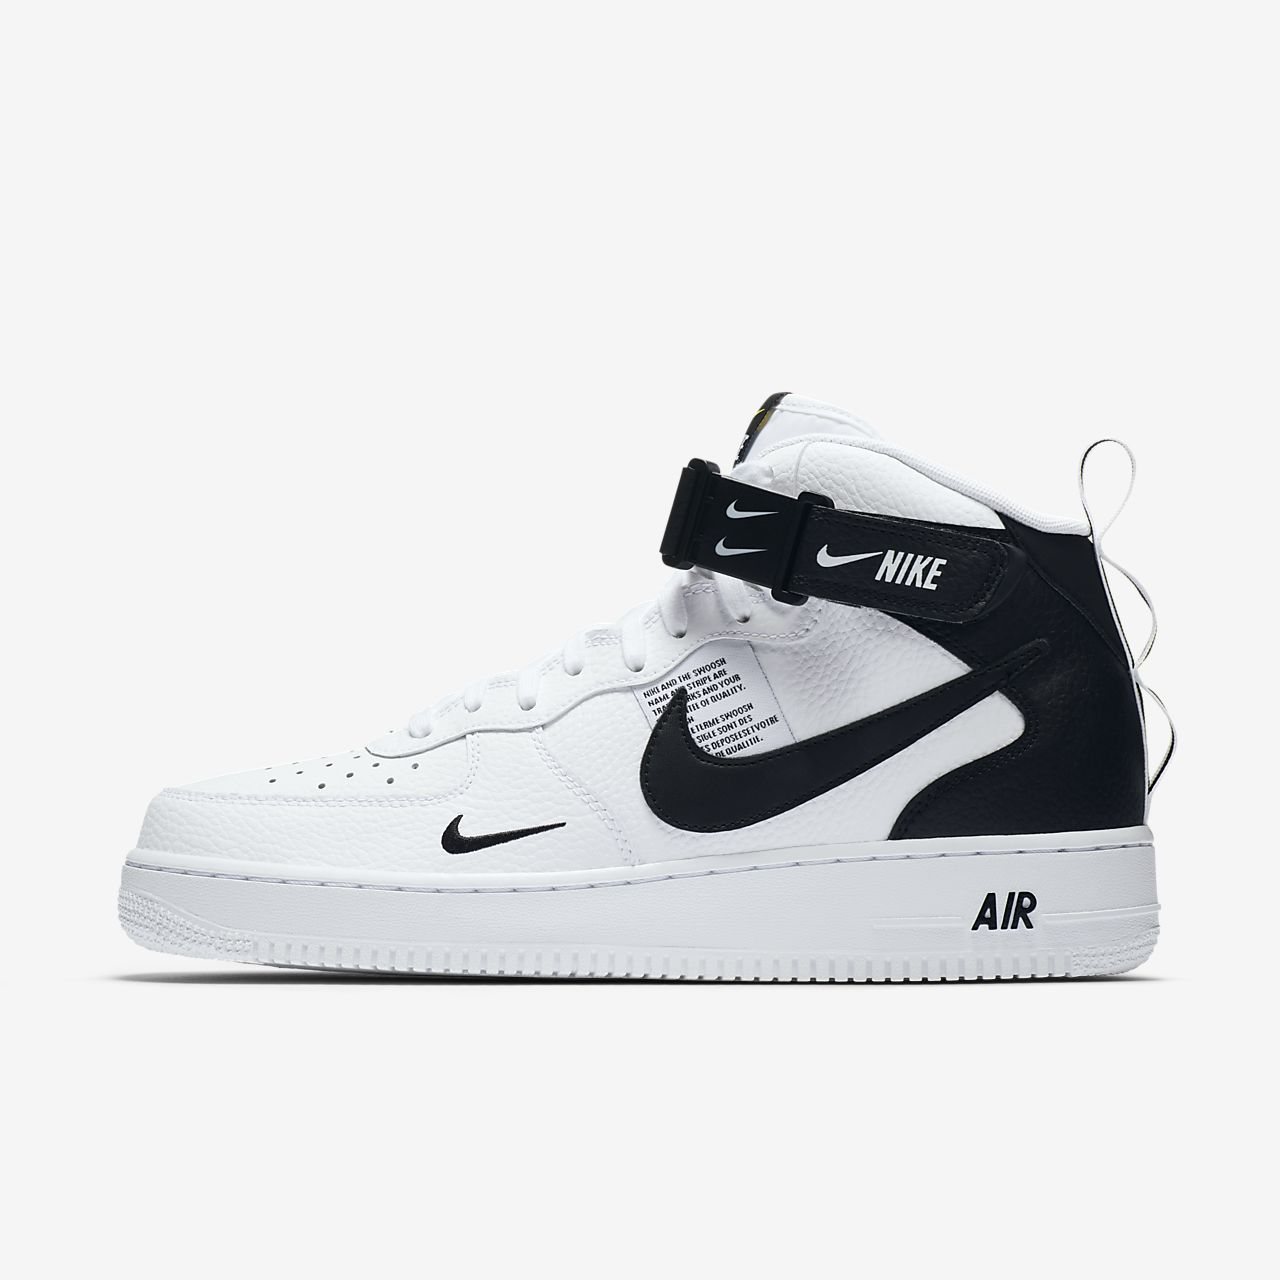 nike air force uomo 1 07